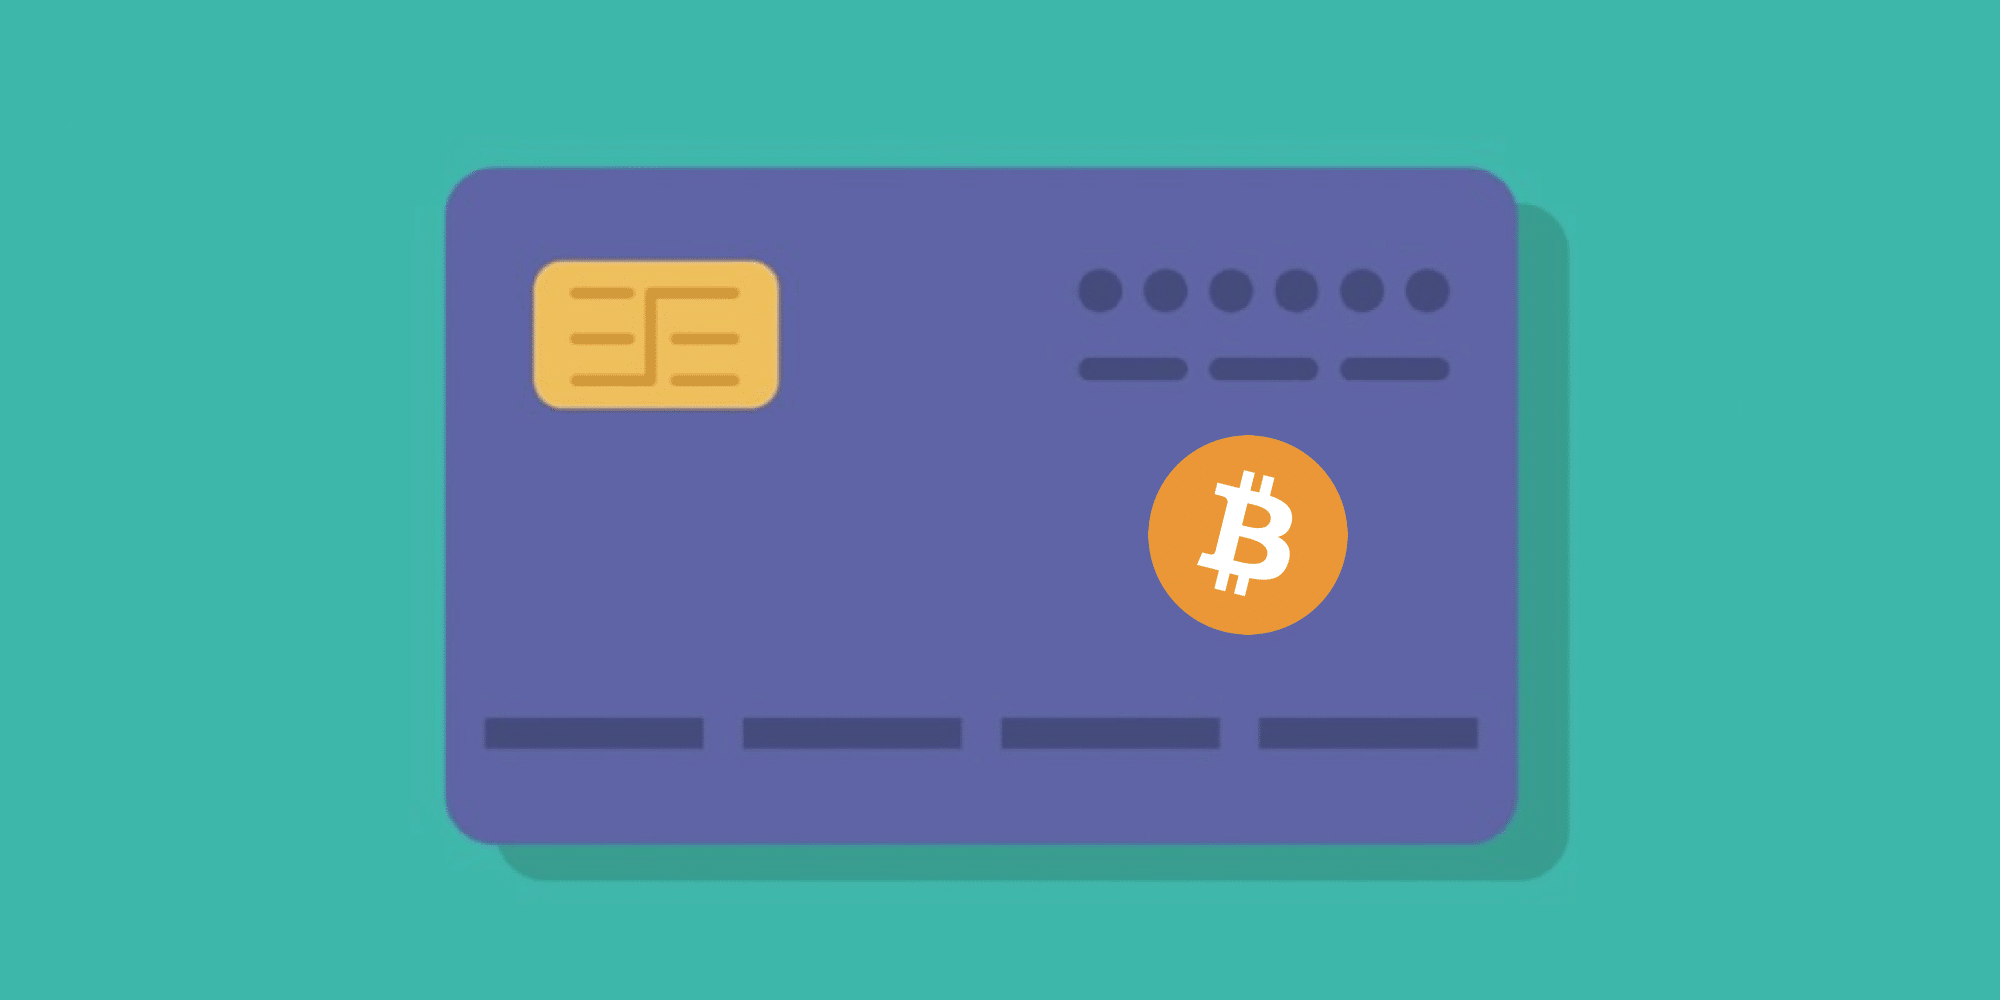 where can cryptocurrency be bought with prepaid debit card